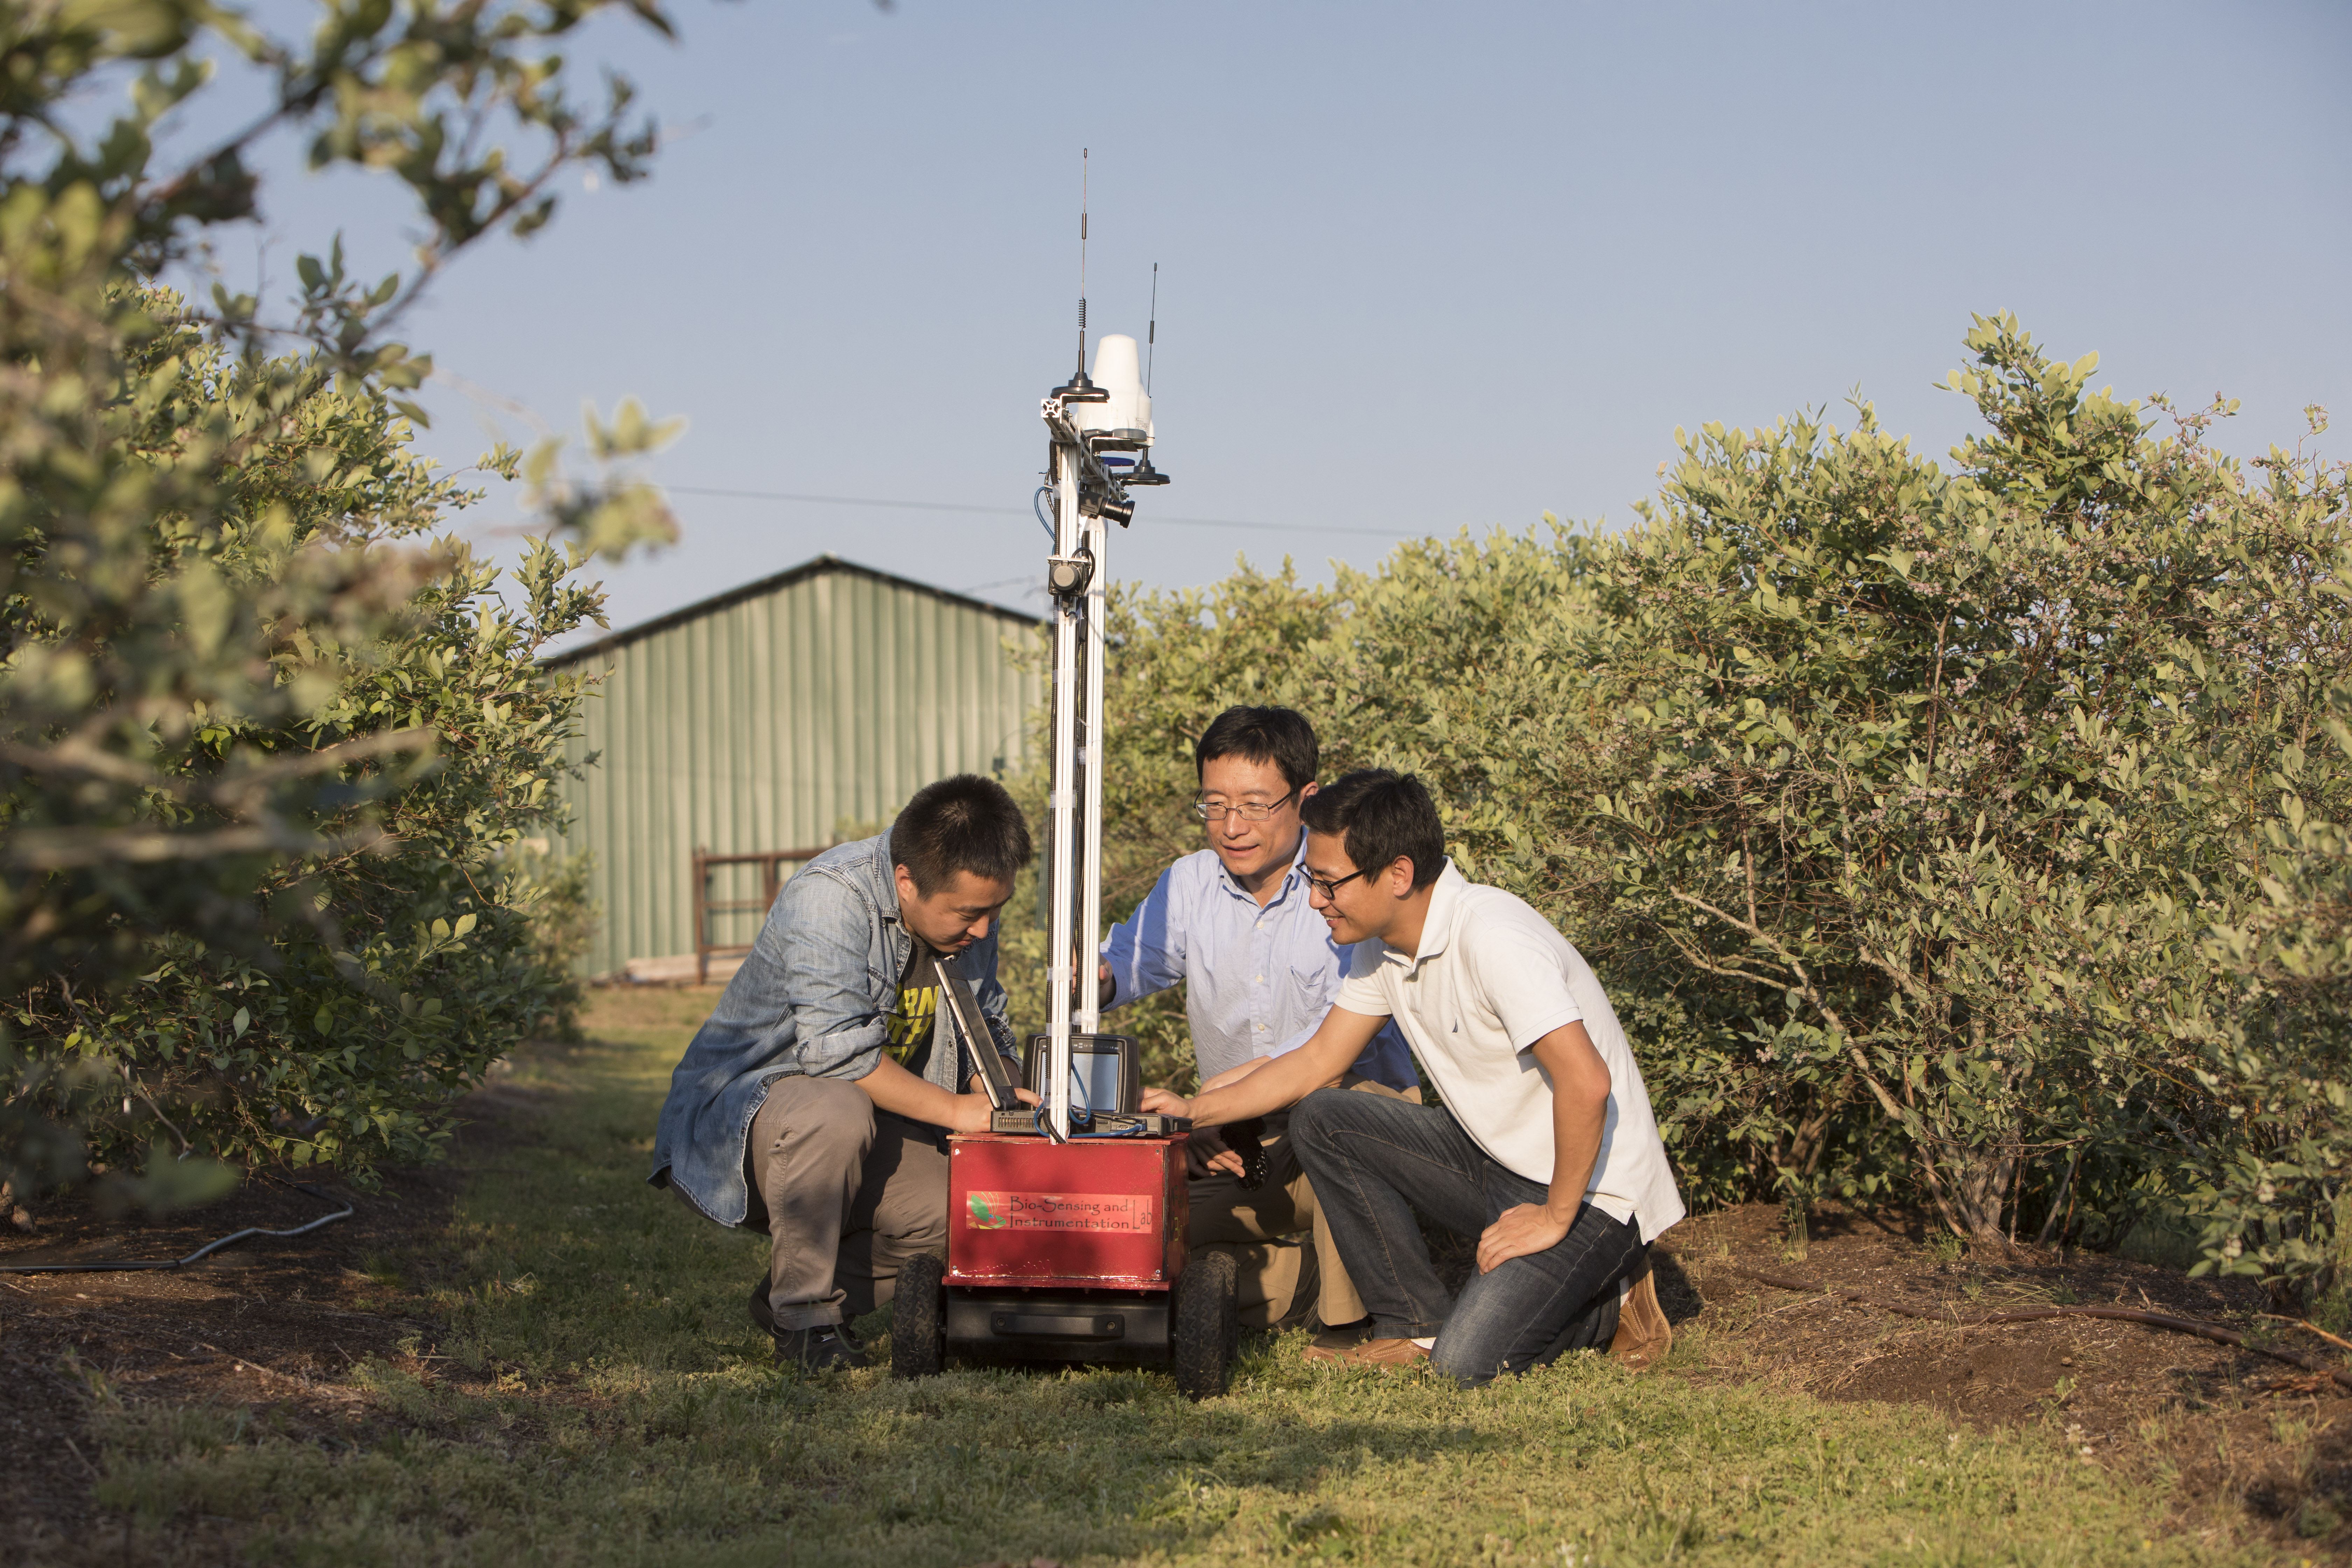 Professor Changying (Charlie) Li works with graduate students (L-R) Yu Jiang and Shangpeng Sun with a robot in a blueberry field. Li is heading a new research initiative at UGA, the Phenomics and Plant Robotics Center. The center will spearhead new research into using robots, sensing and data analysis to help aid the development of new crop varieties.